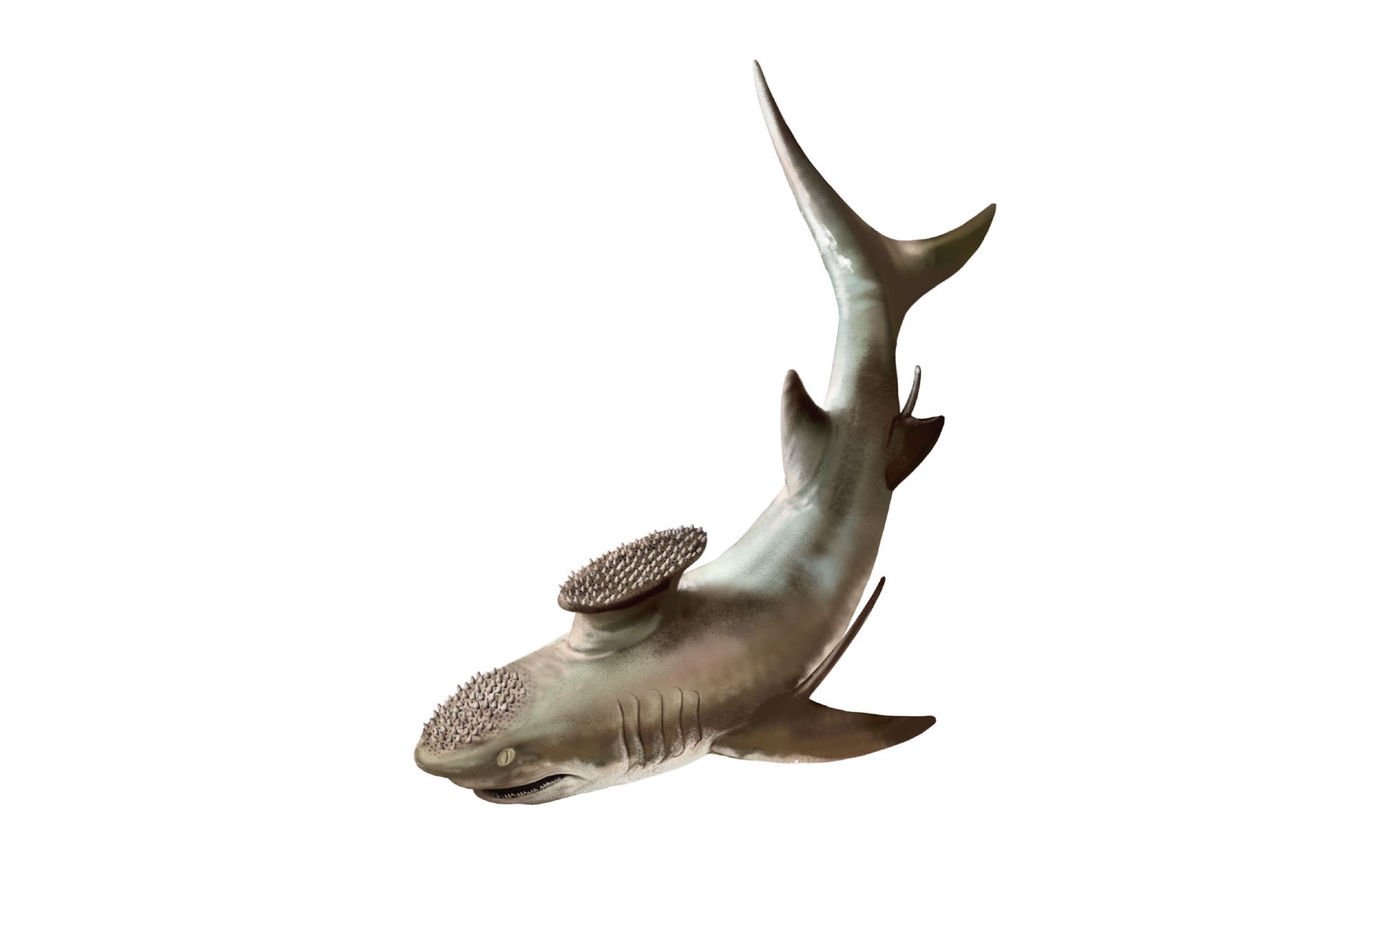 Illustration of a gray shark with bristles on its head and on a stump protruding from its back.